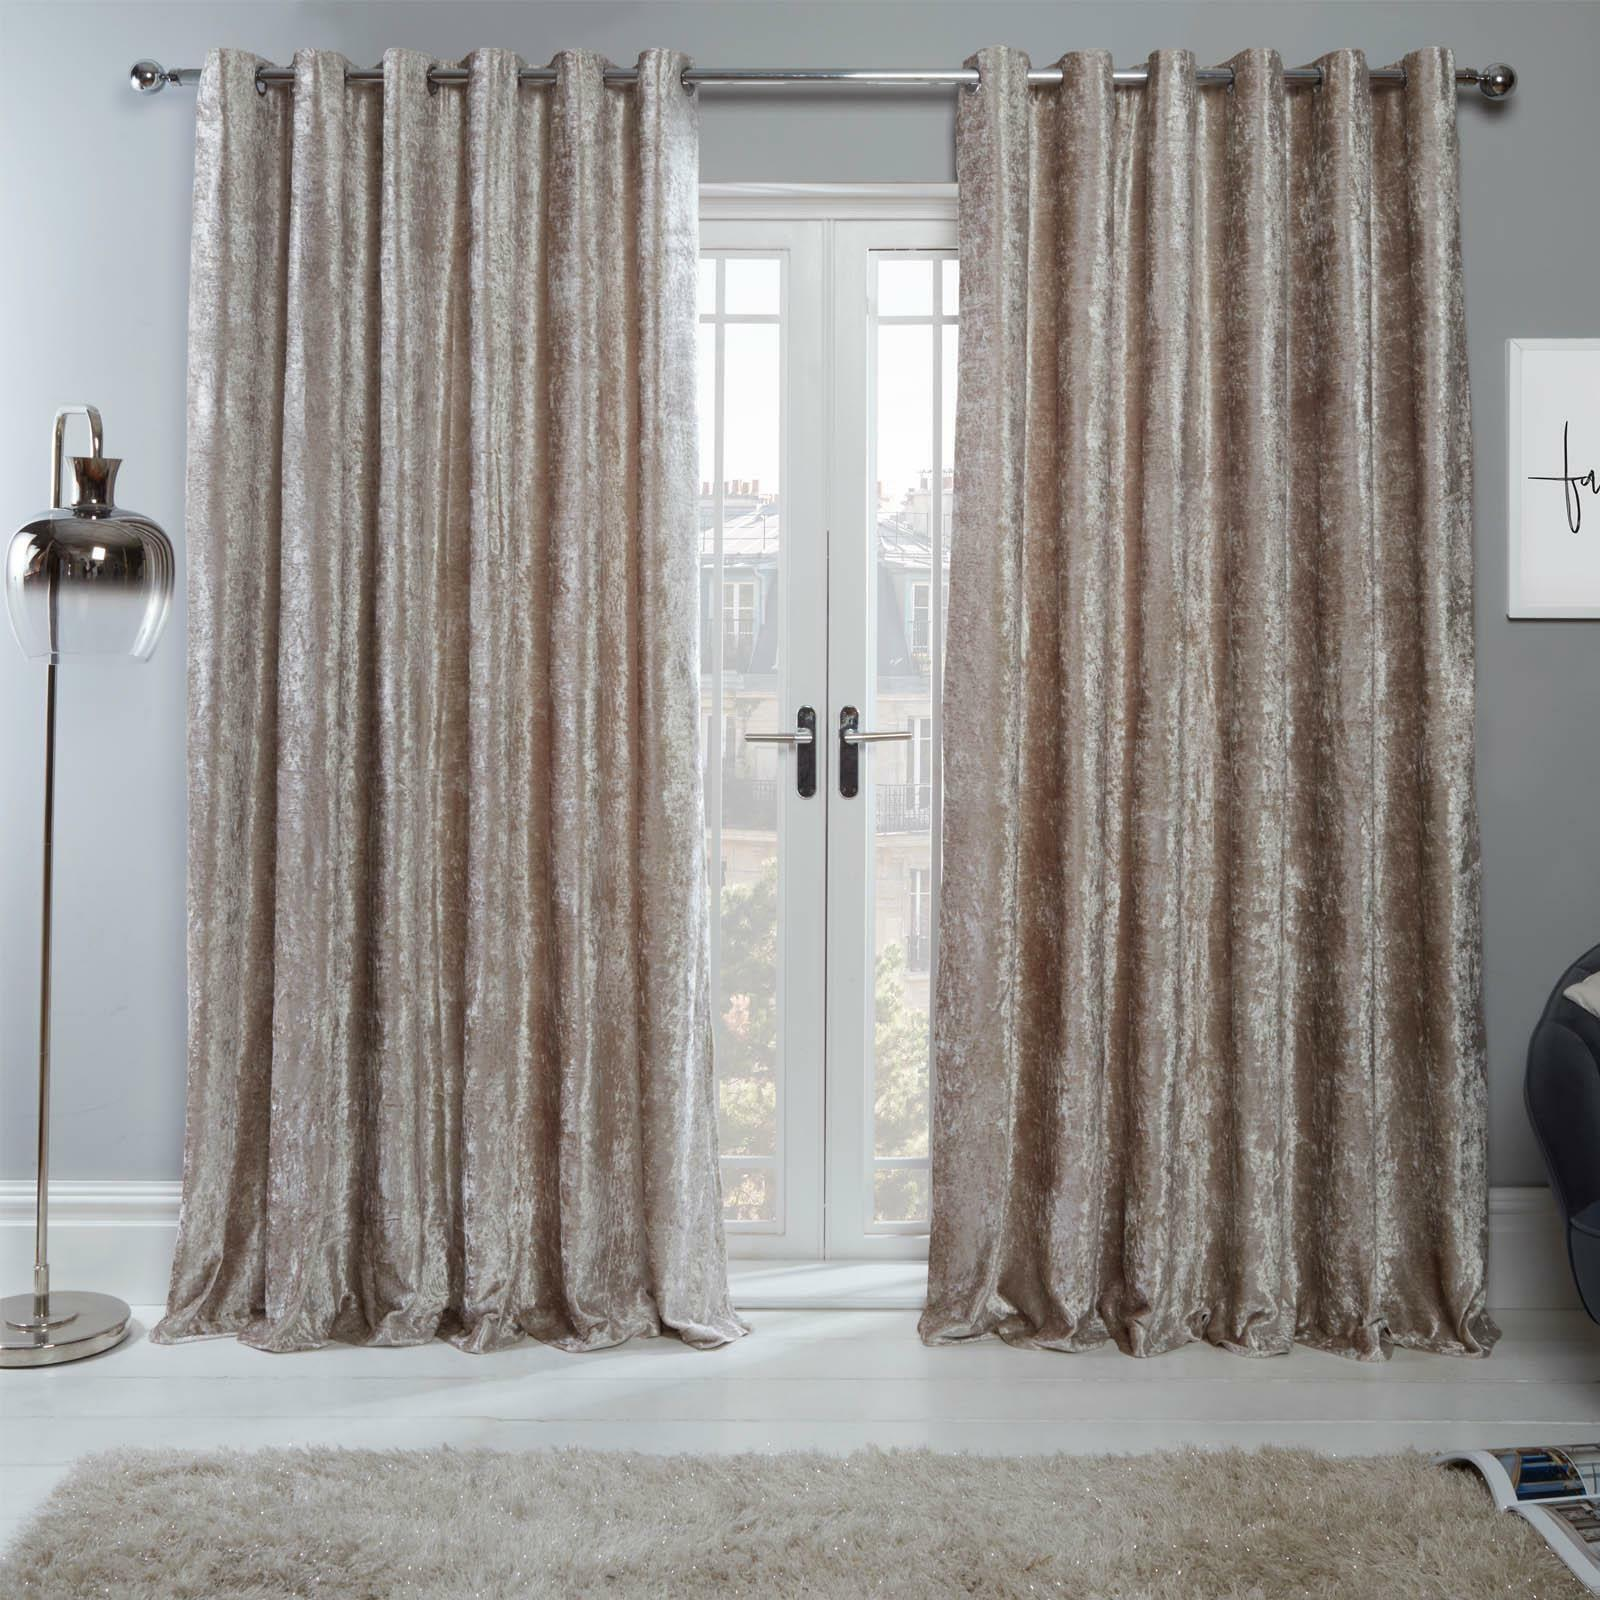 Sienna Crushed Velvet Eyelet Ring Lined Curtains Natural Champagne Beige Pair For Sale Online Ebay